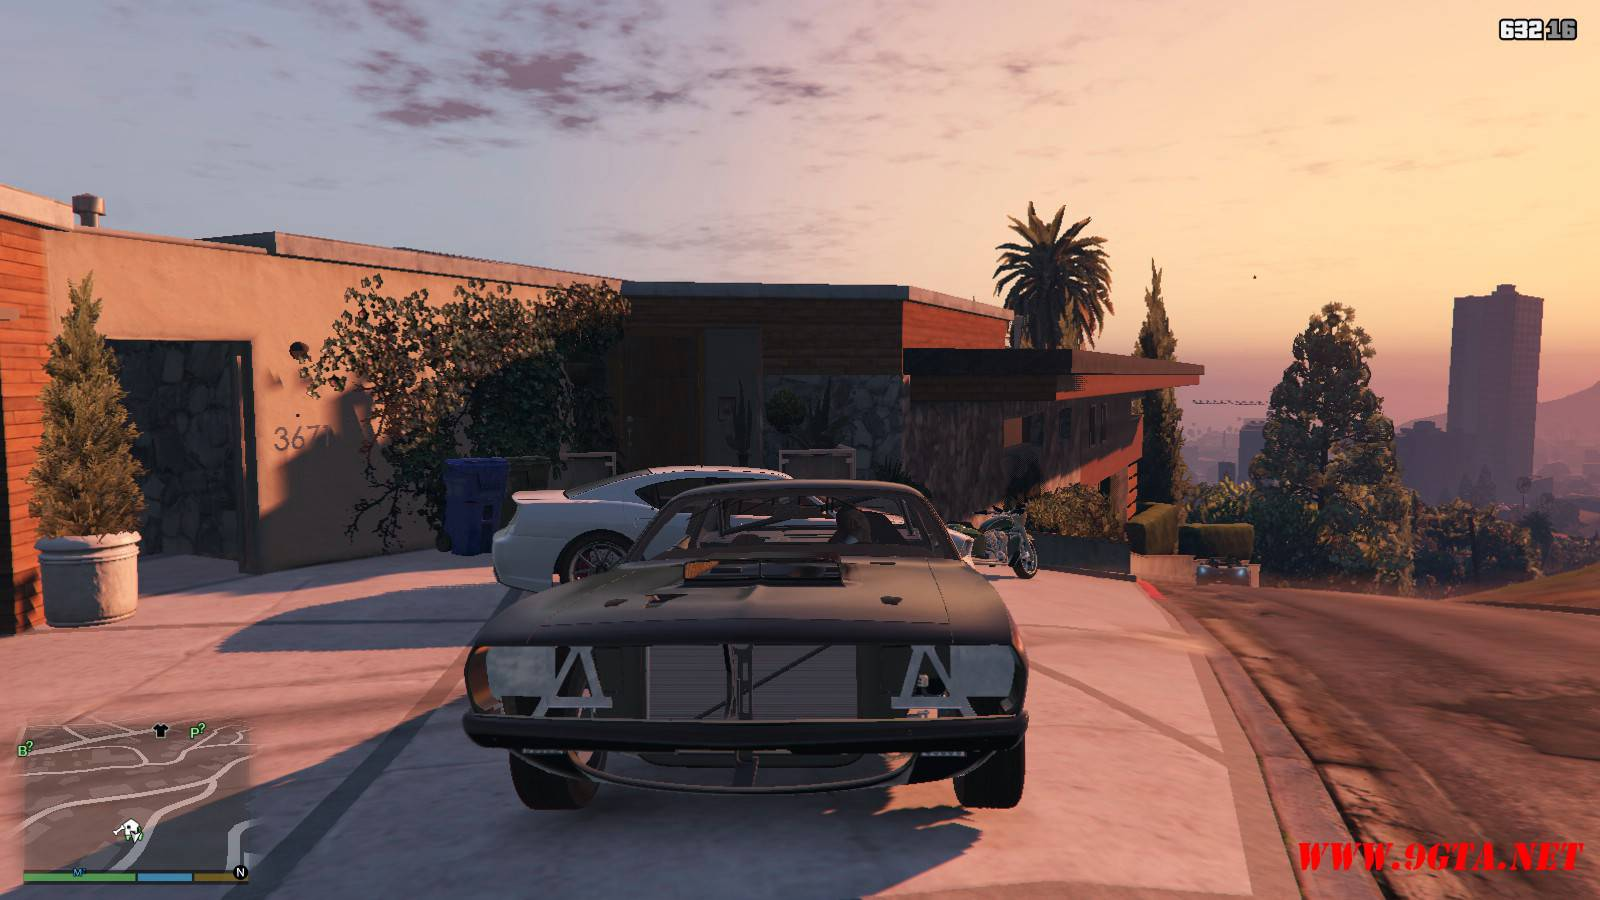 Plymouth Kuda Beck Customs Mod For GTA5 (9)